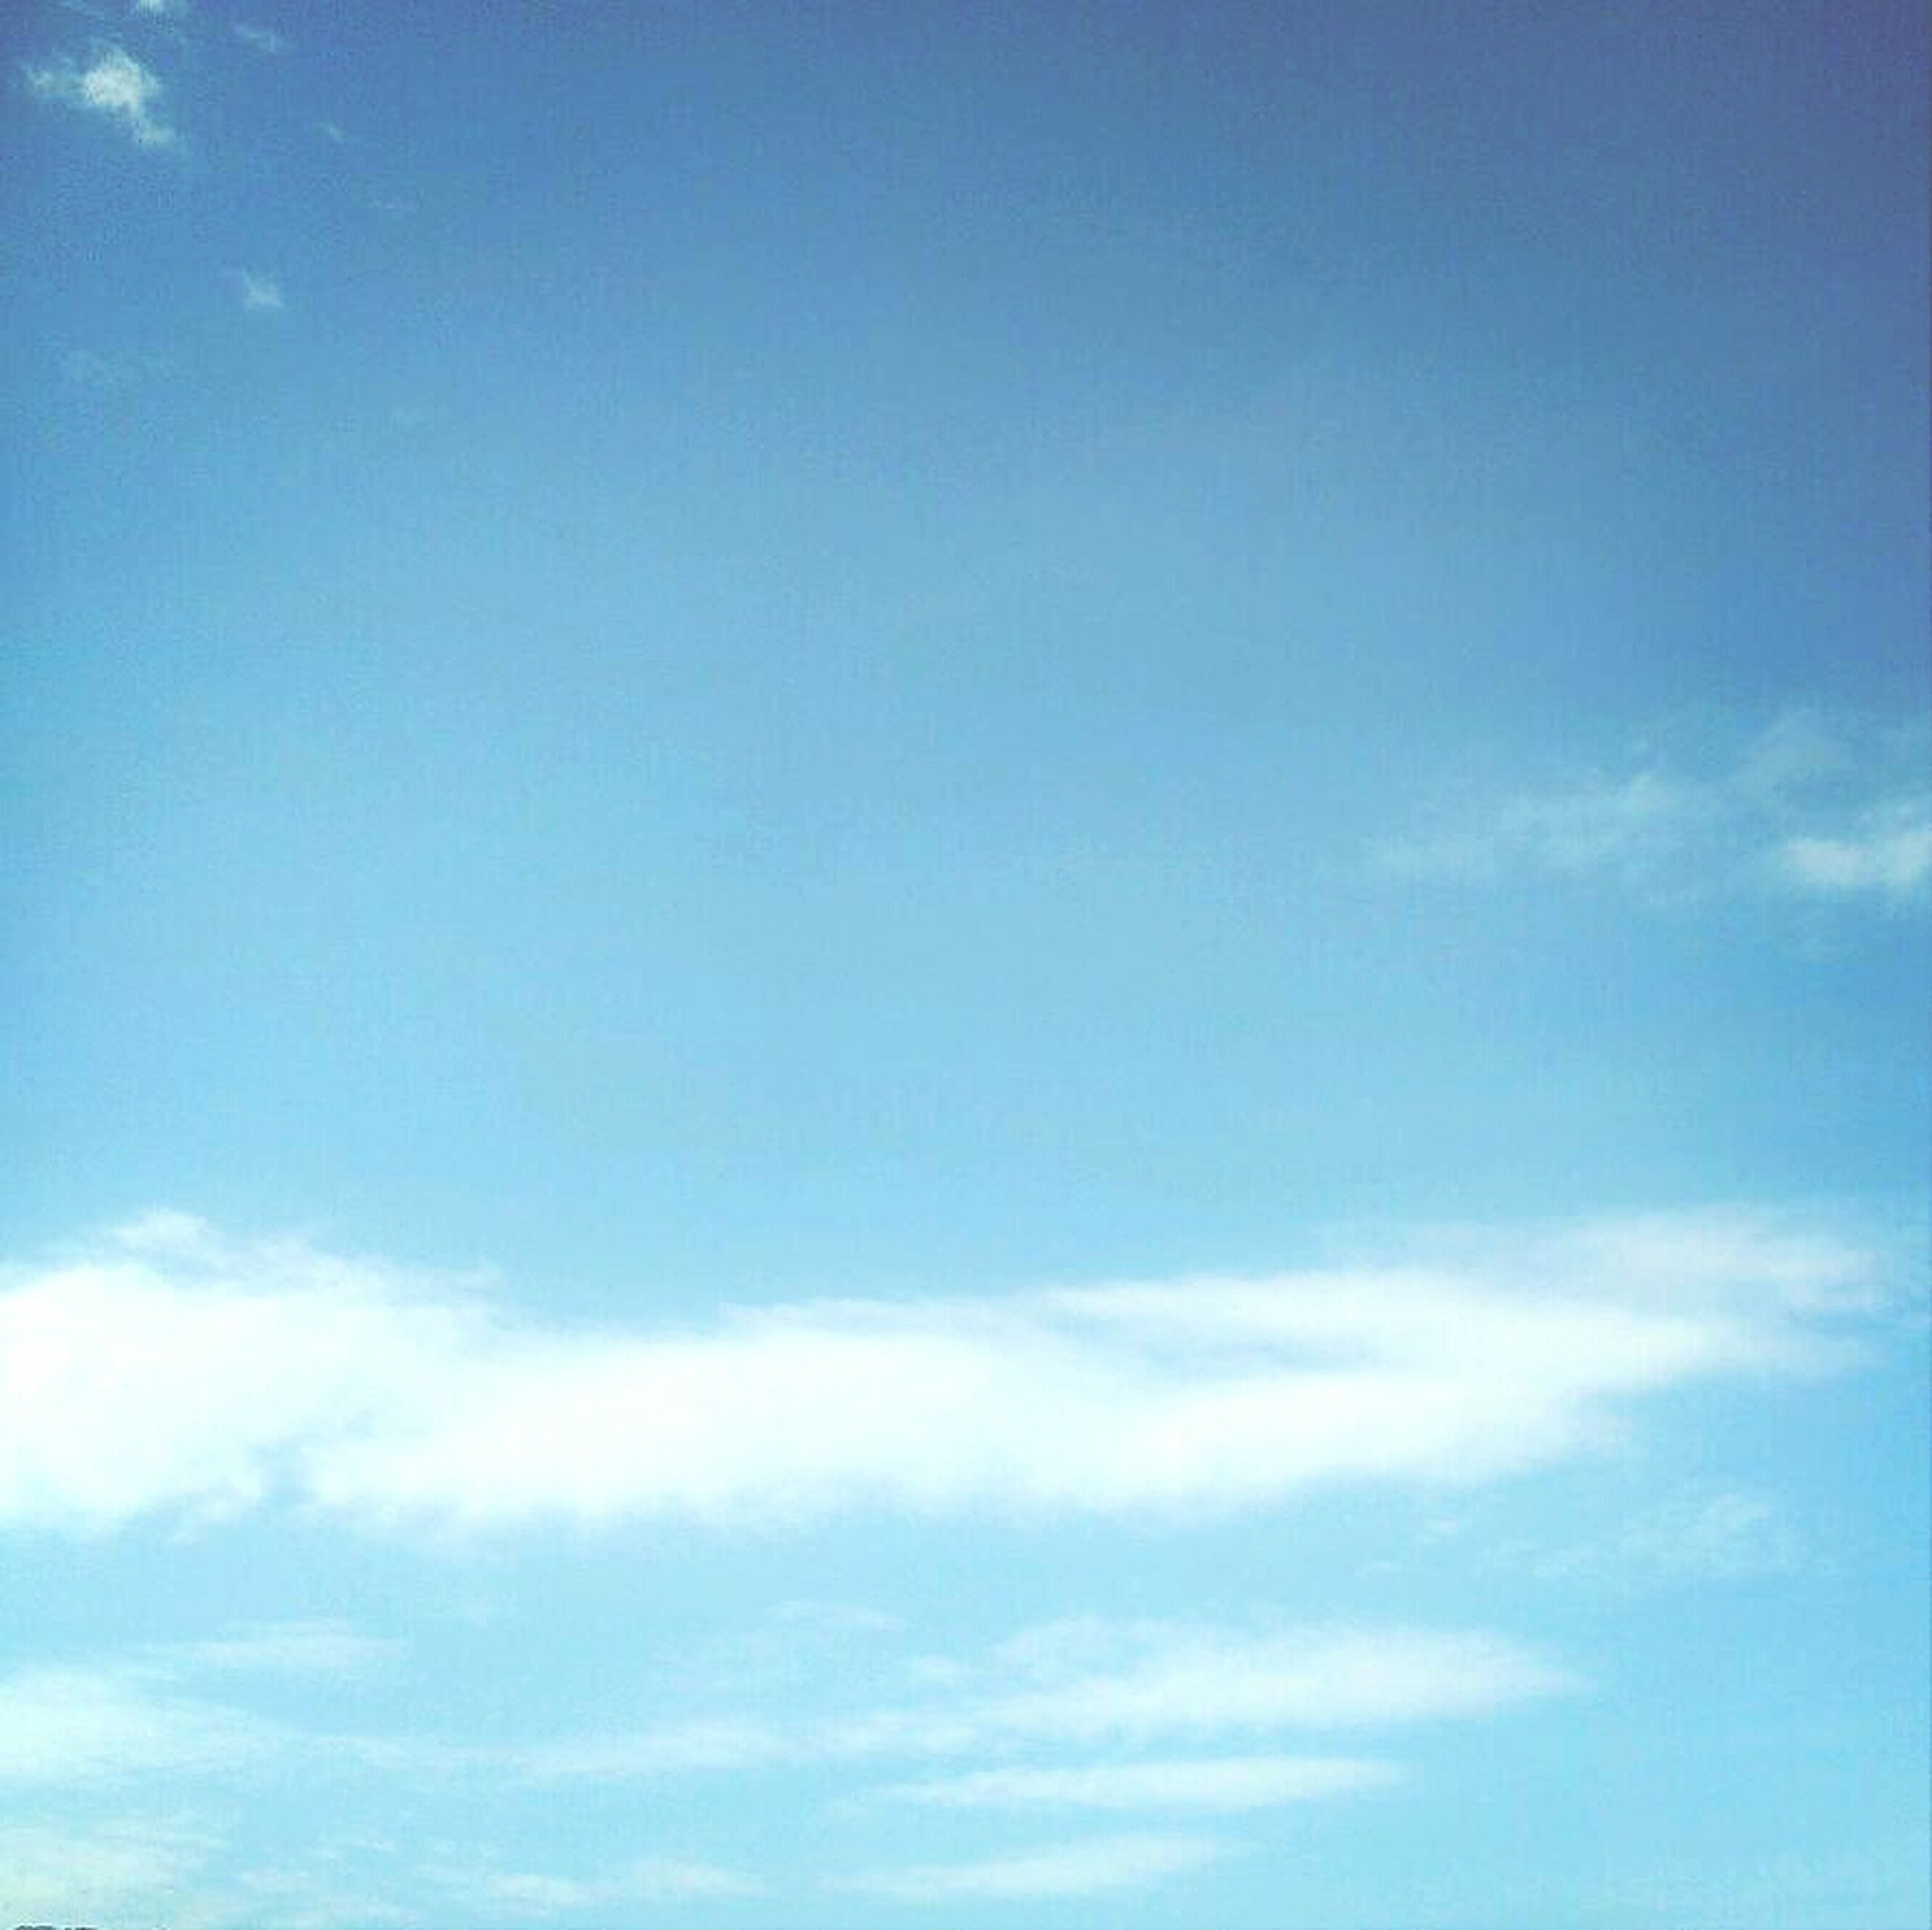 blue, sky, low angle view, beauty in nature, tranquility, scenics, tranquil scene, cloud - sky, nature, sky only, copy space, cloud, idyllic, day, white color, outdoors, backgrounds, no people, cloudscape, cloudy